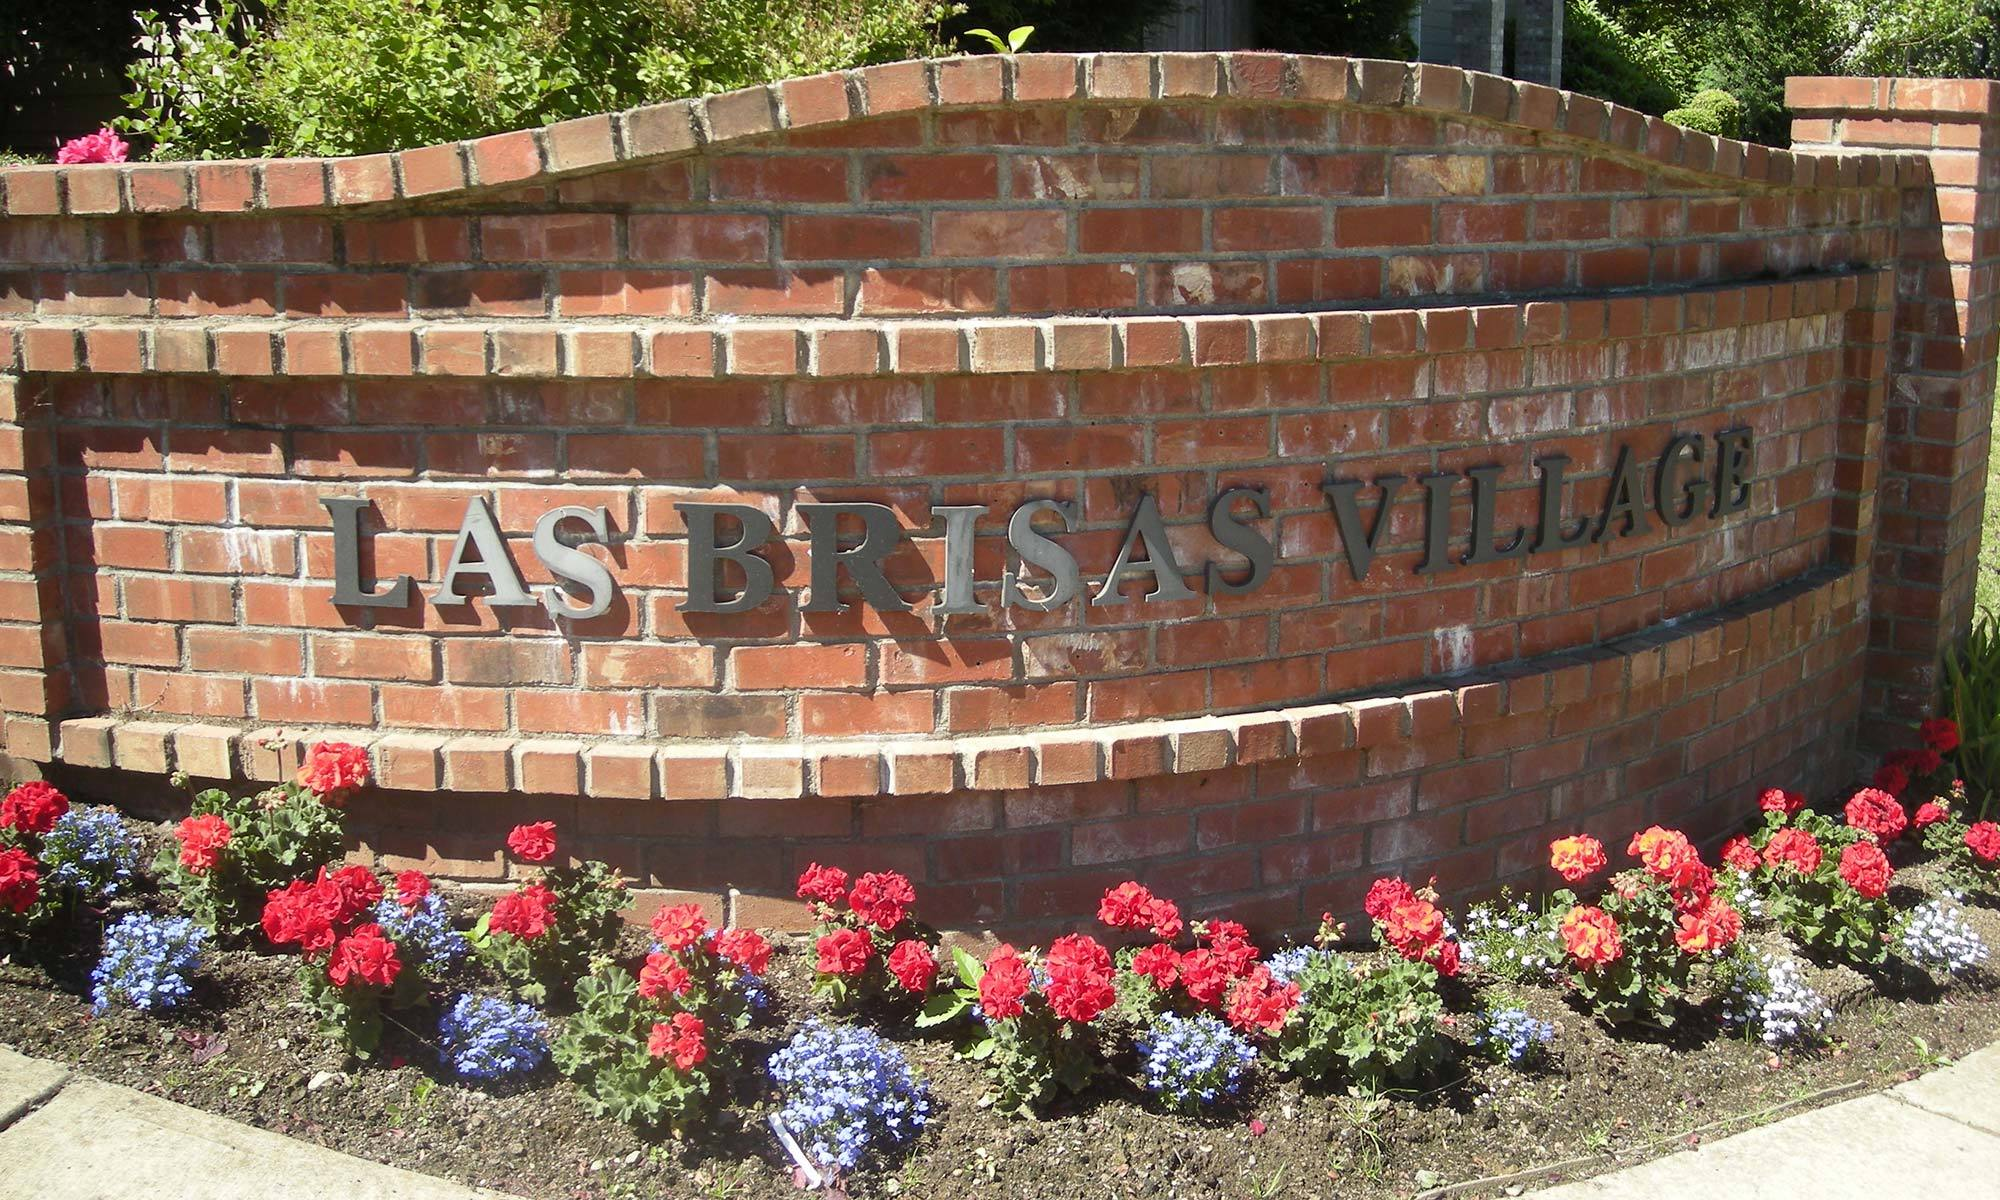 Learn more about our apartment community at Las Brisas in Portland; schedule your tour today!